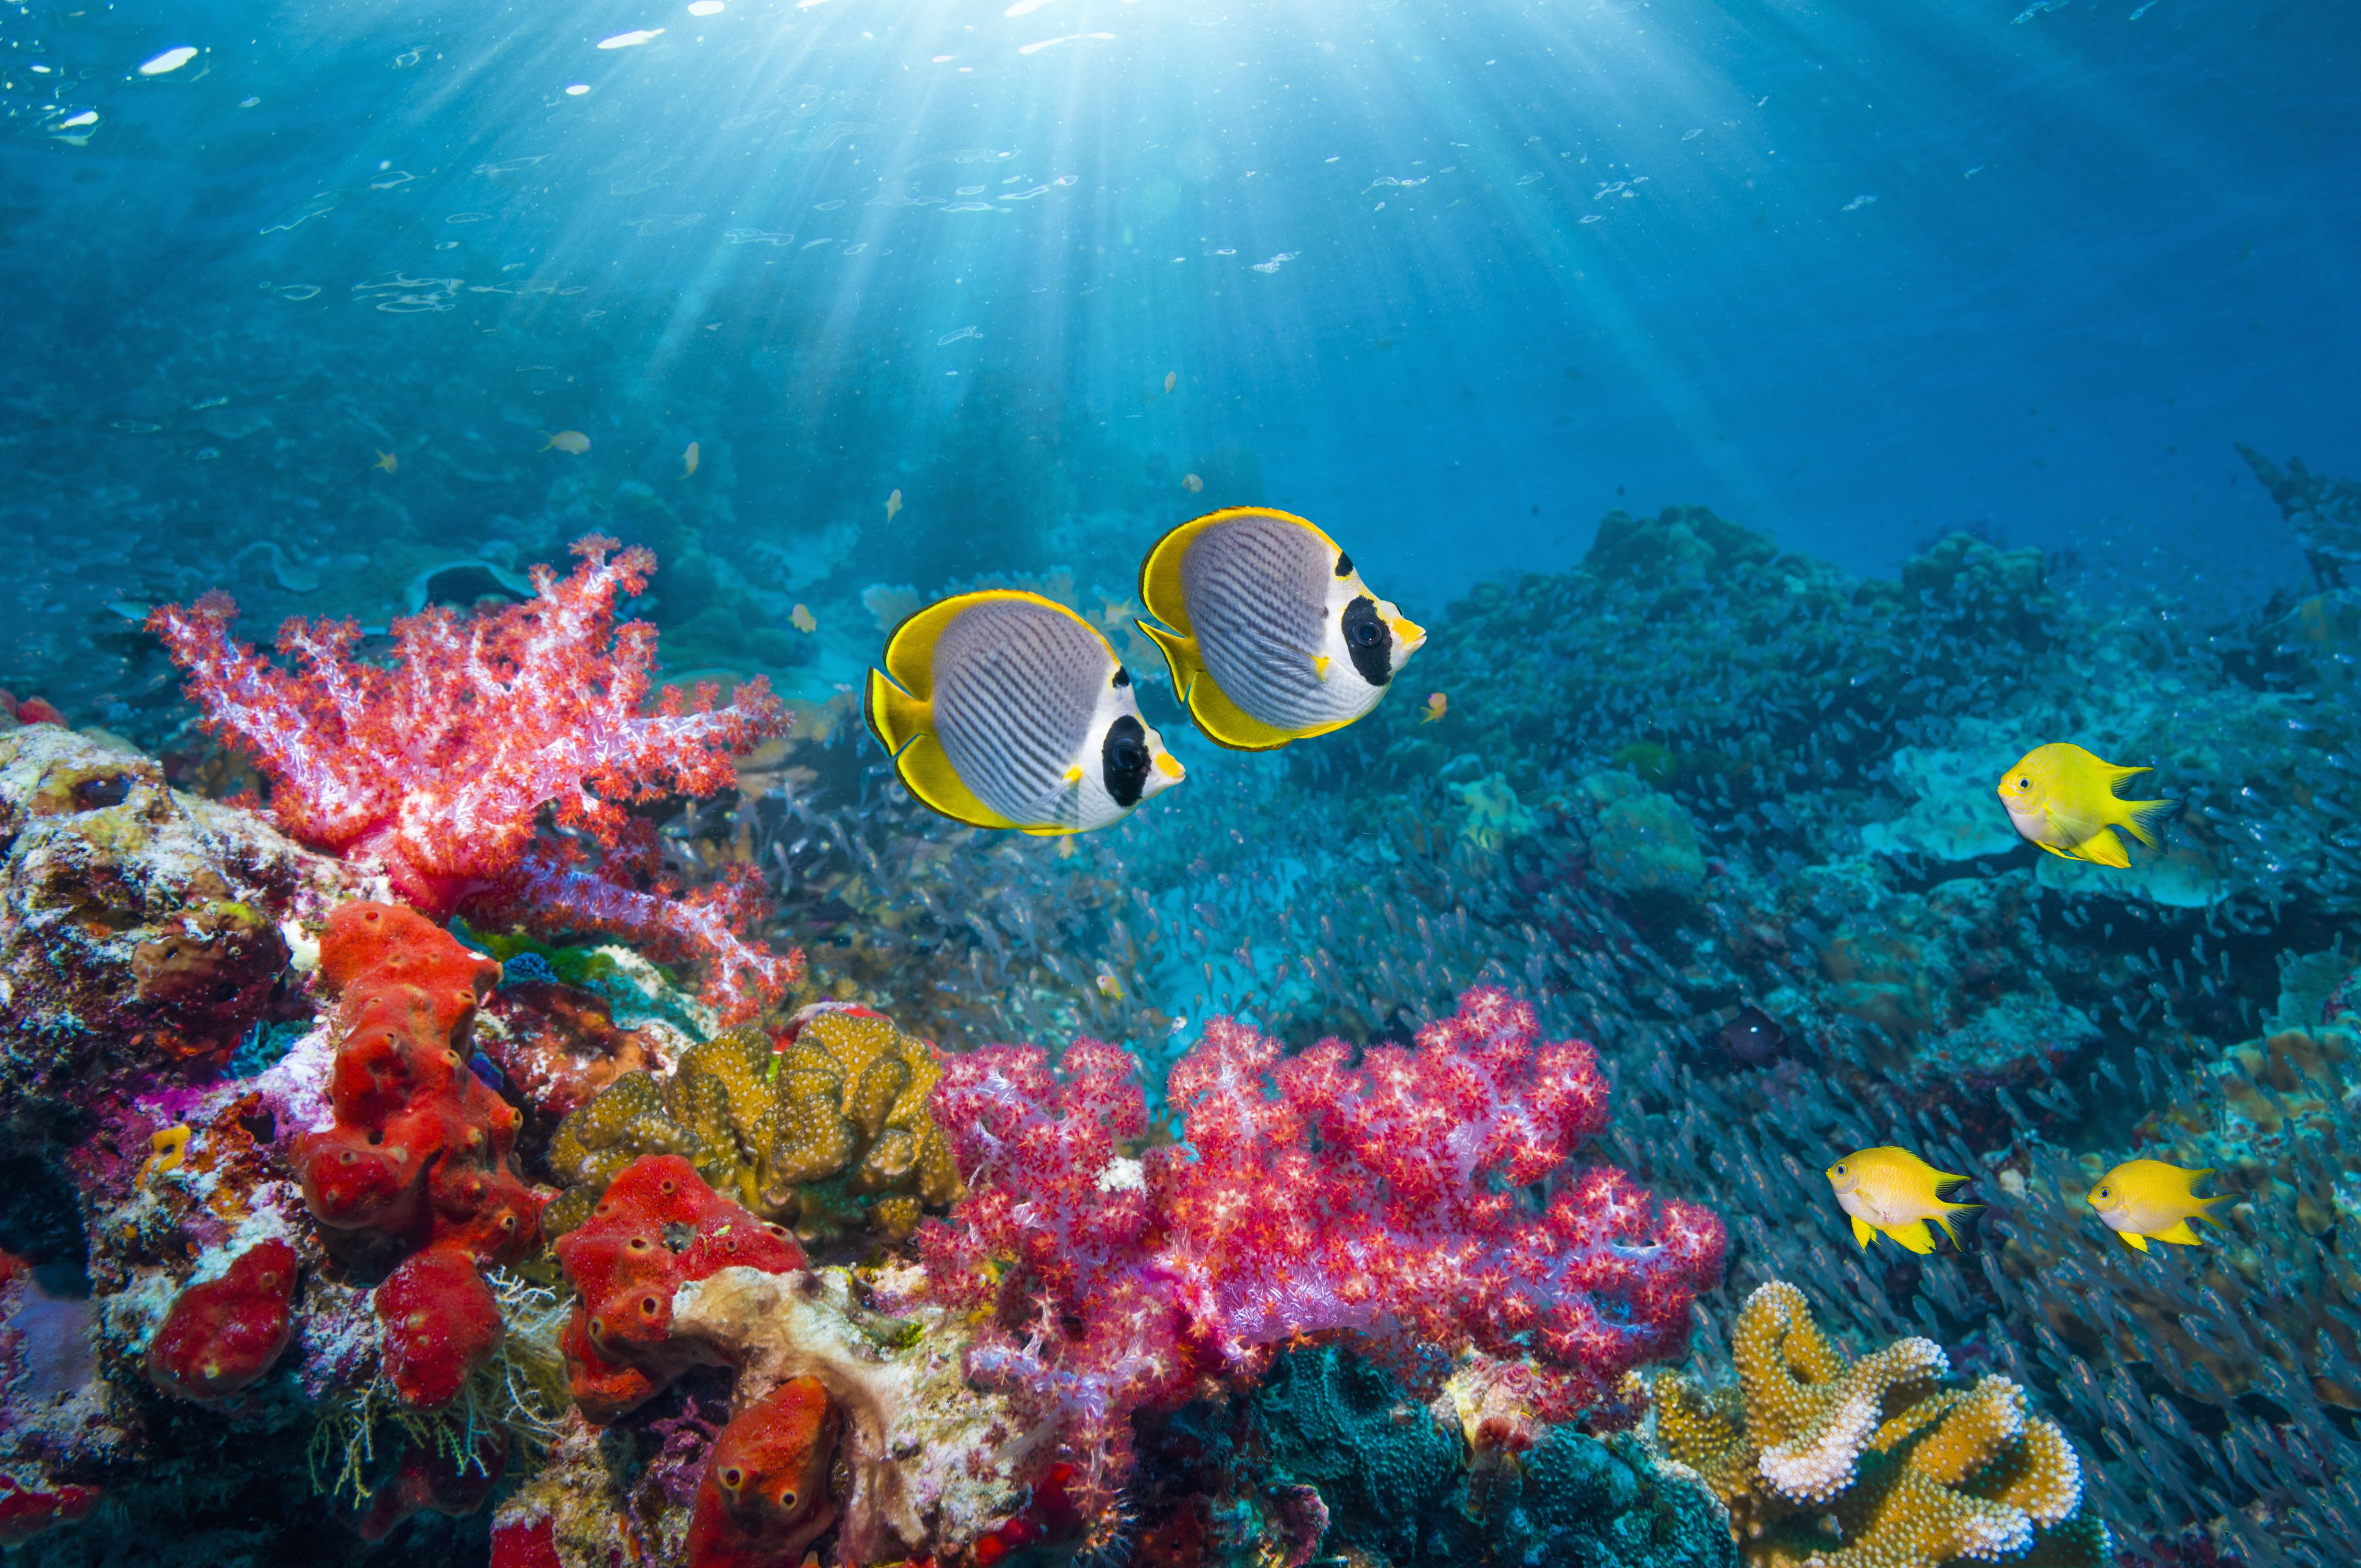 10 Ways to Protect Coral Reefs When You Travel